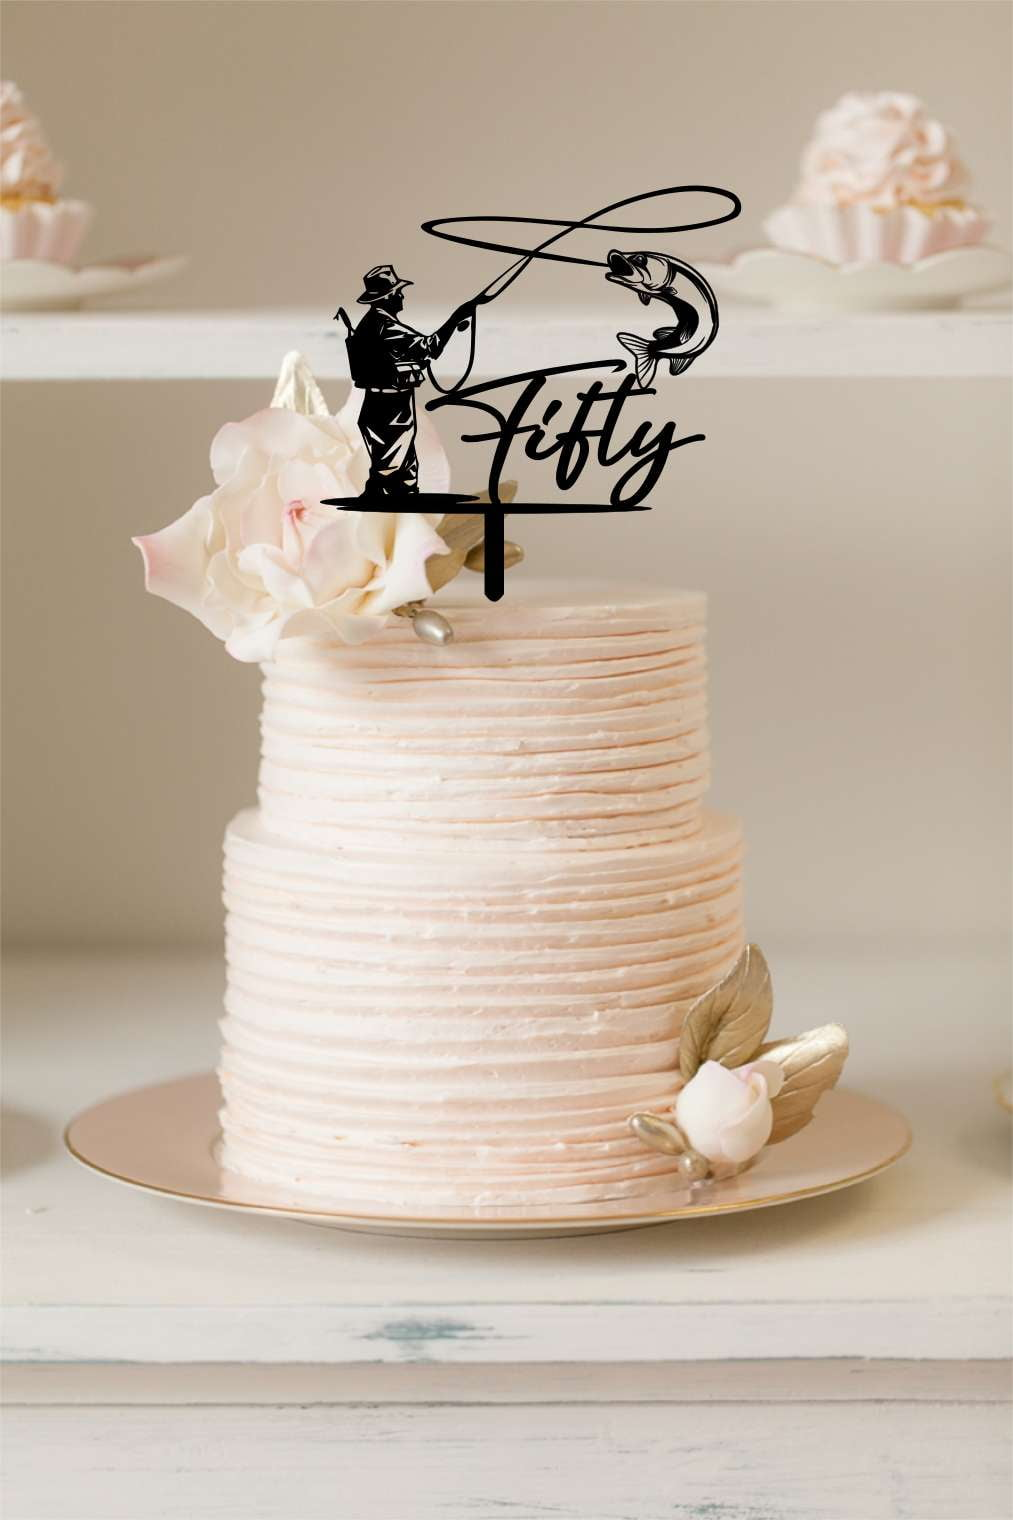 Cake Topper - Fly Fishing